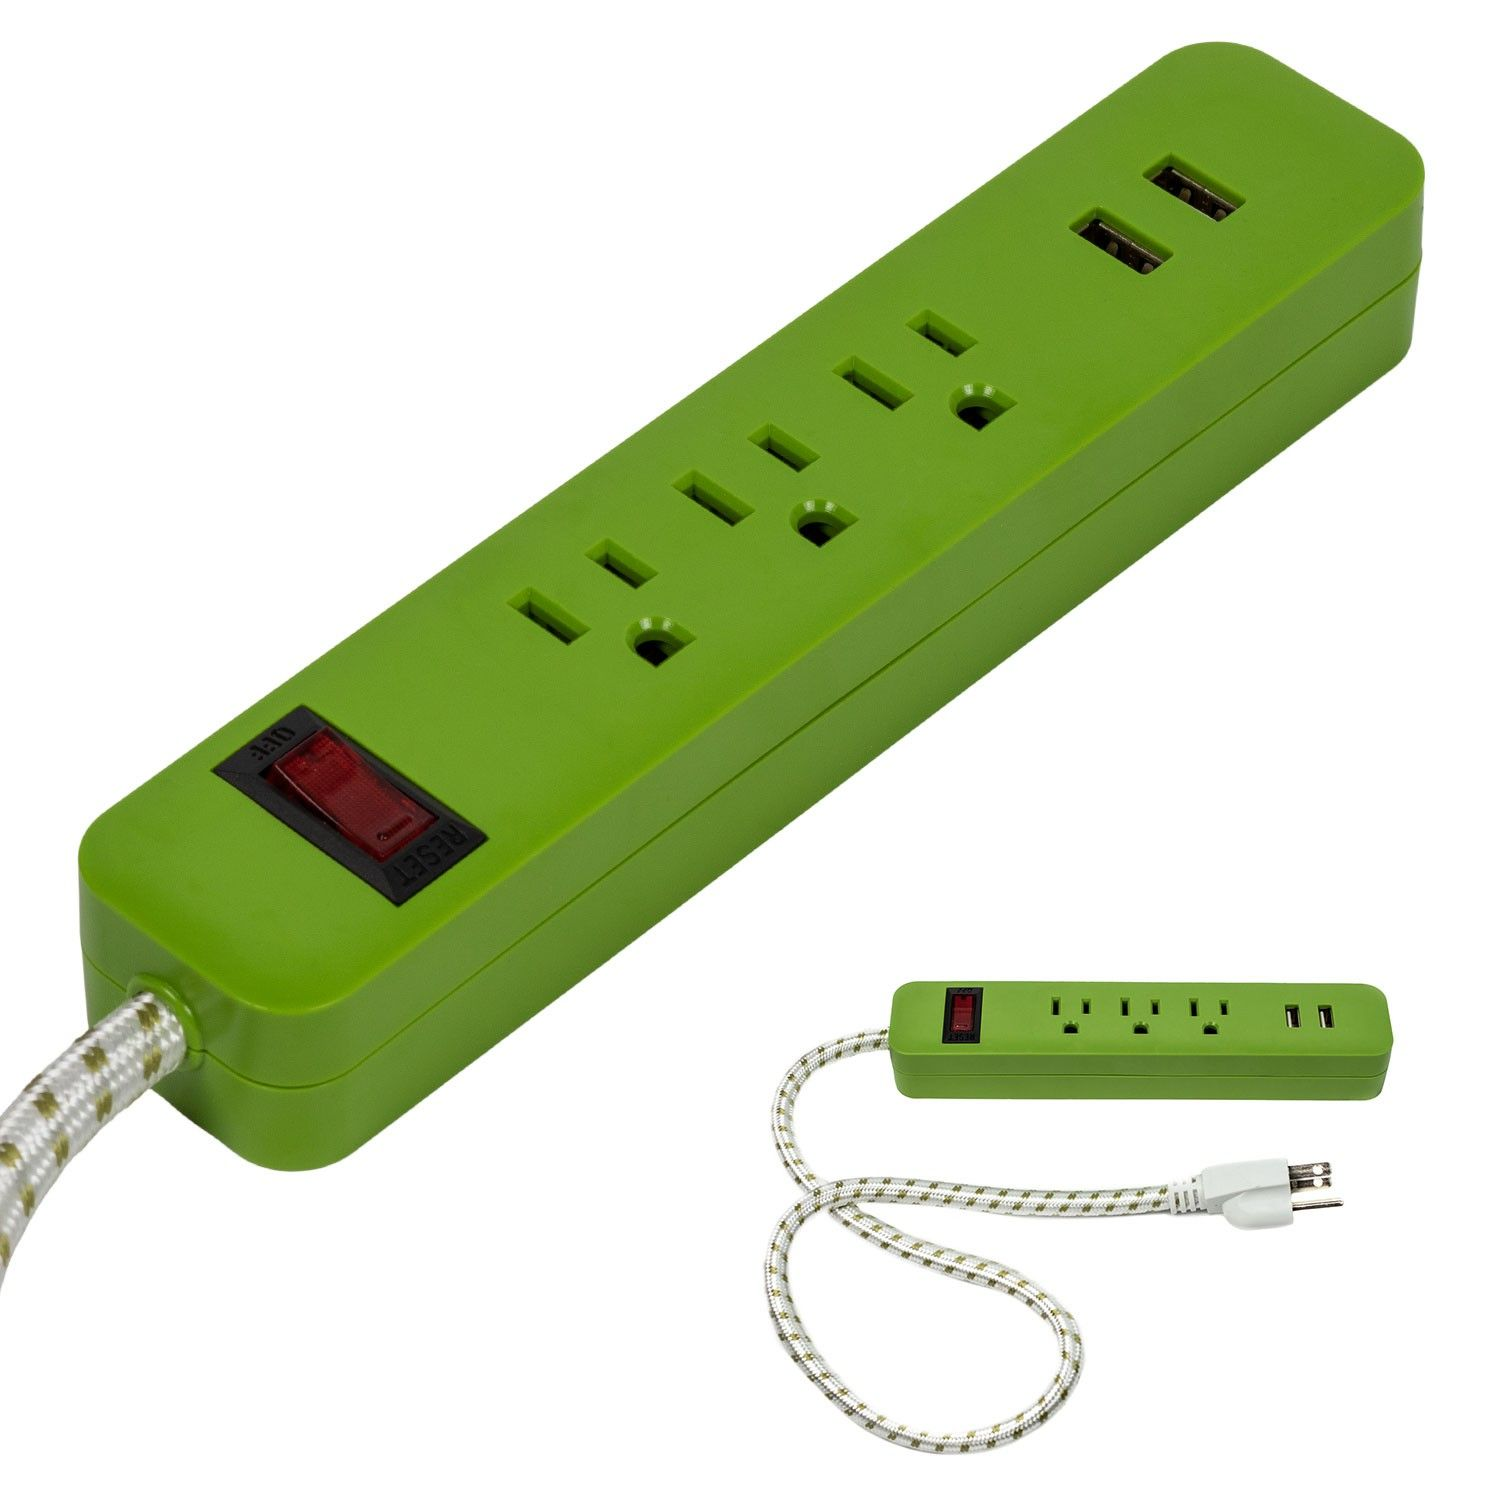 Brightway Green 3 Outlet 2 Usb Surge Protector Power Strip With 2 Braided Cord Discontinued No Longer Available Power Strip Surge Protector Usb